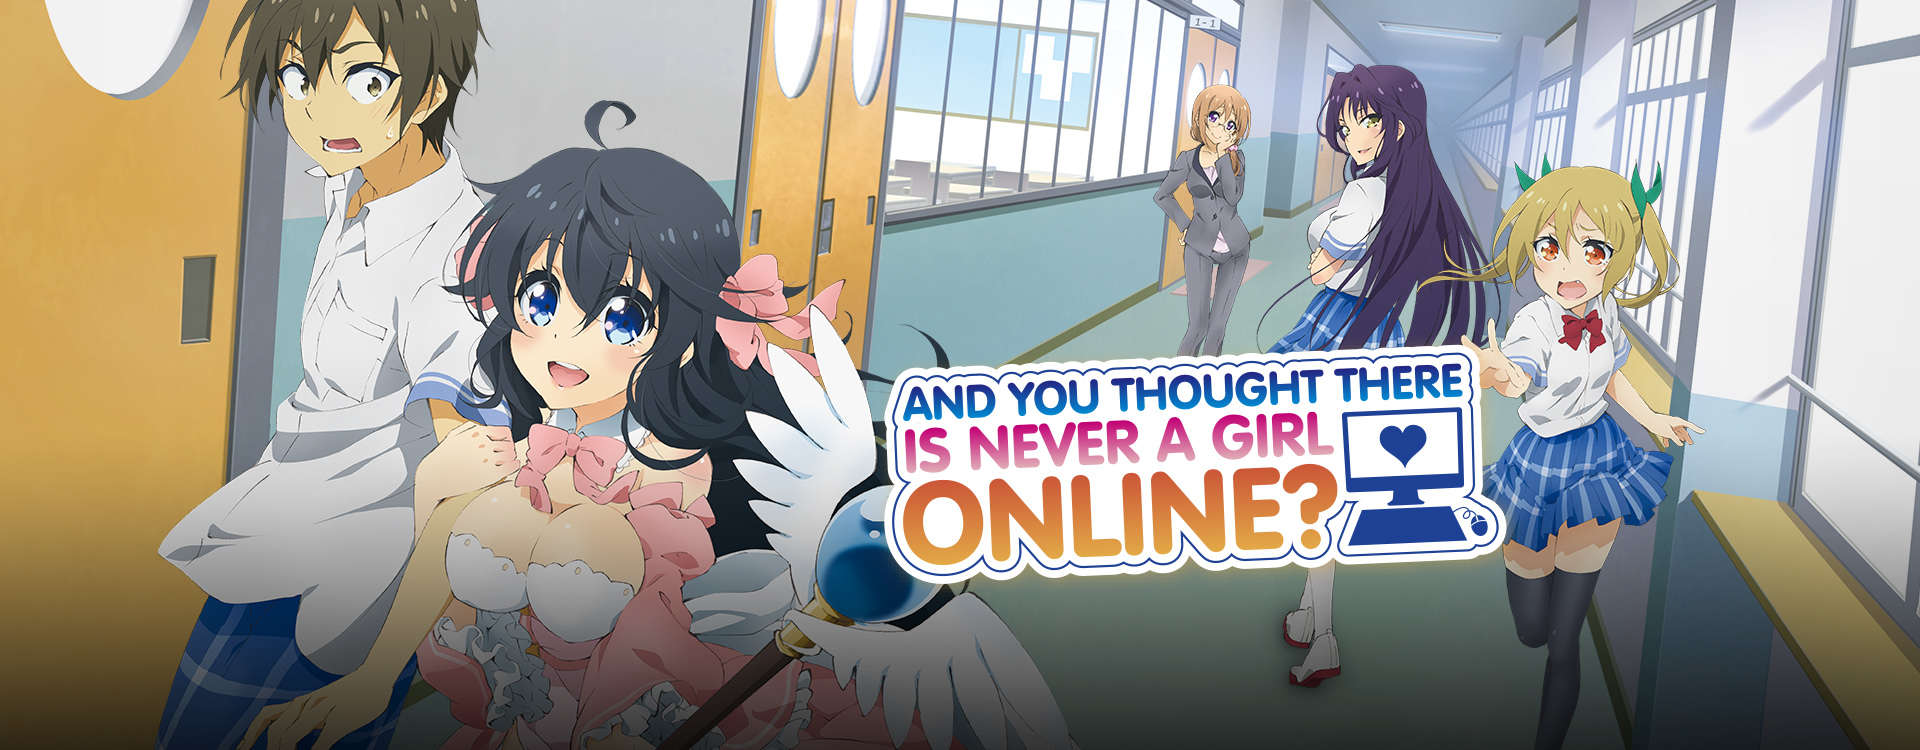 And you thought there is never a girl online?